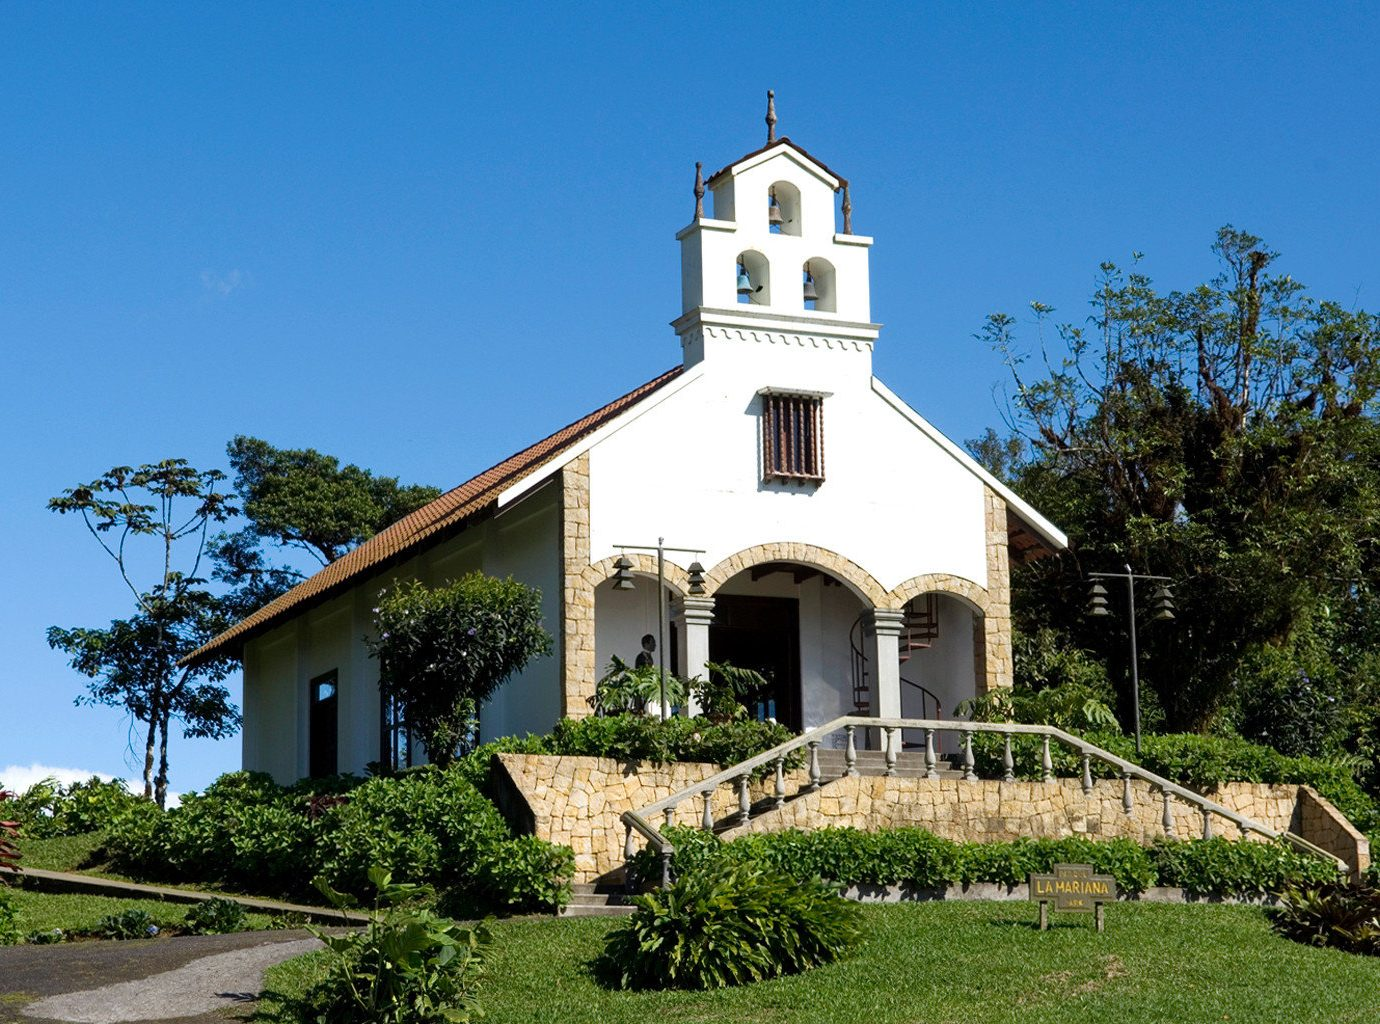 Country Historic Rustic tree sky grass building house tower Church place of worship brick chapel monastery spanish missions in california residential Villa Garden old Town stone